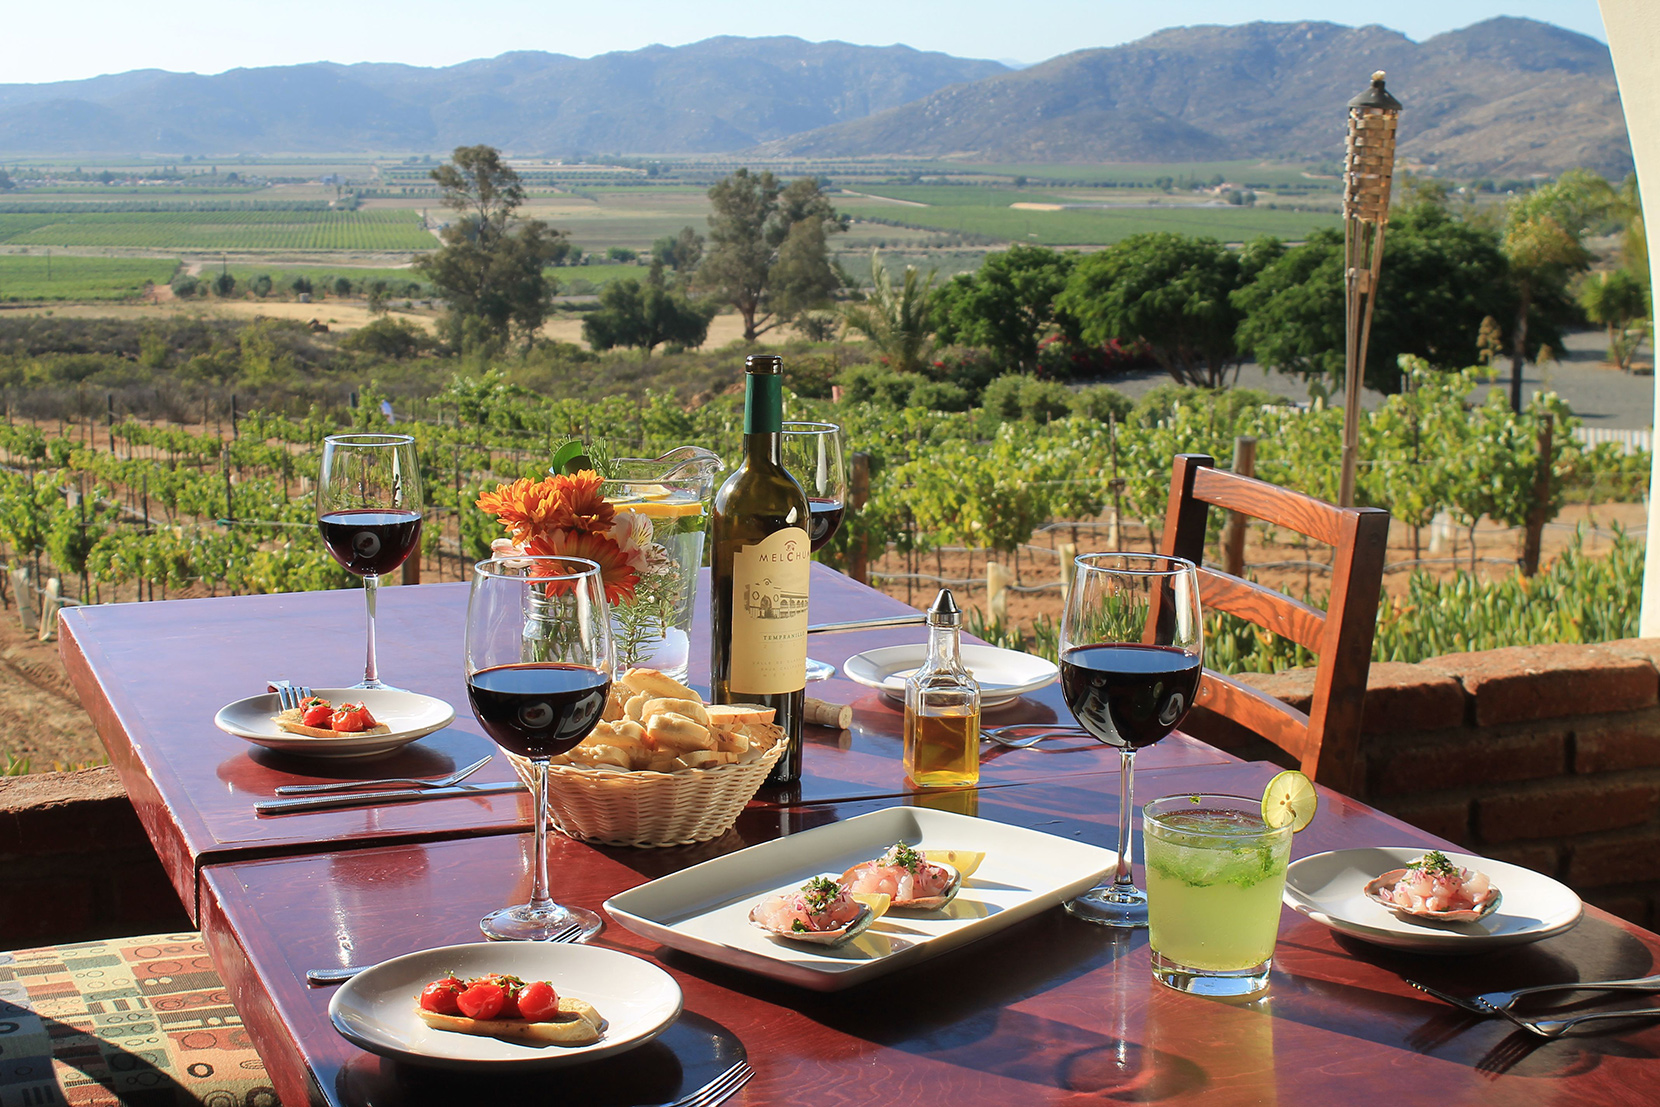 A lunch scene overlooking a winery in Hacienda Guadalupe, Baja Mexico, Mexico